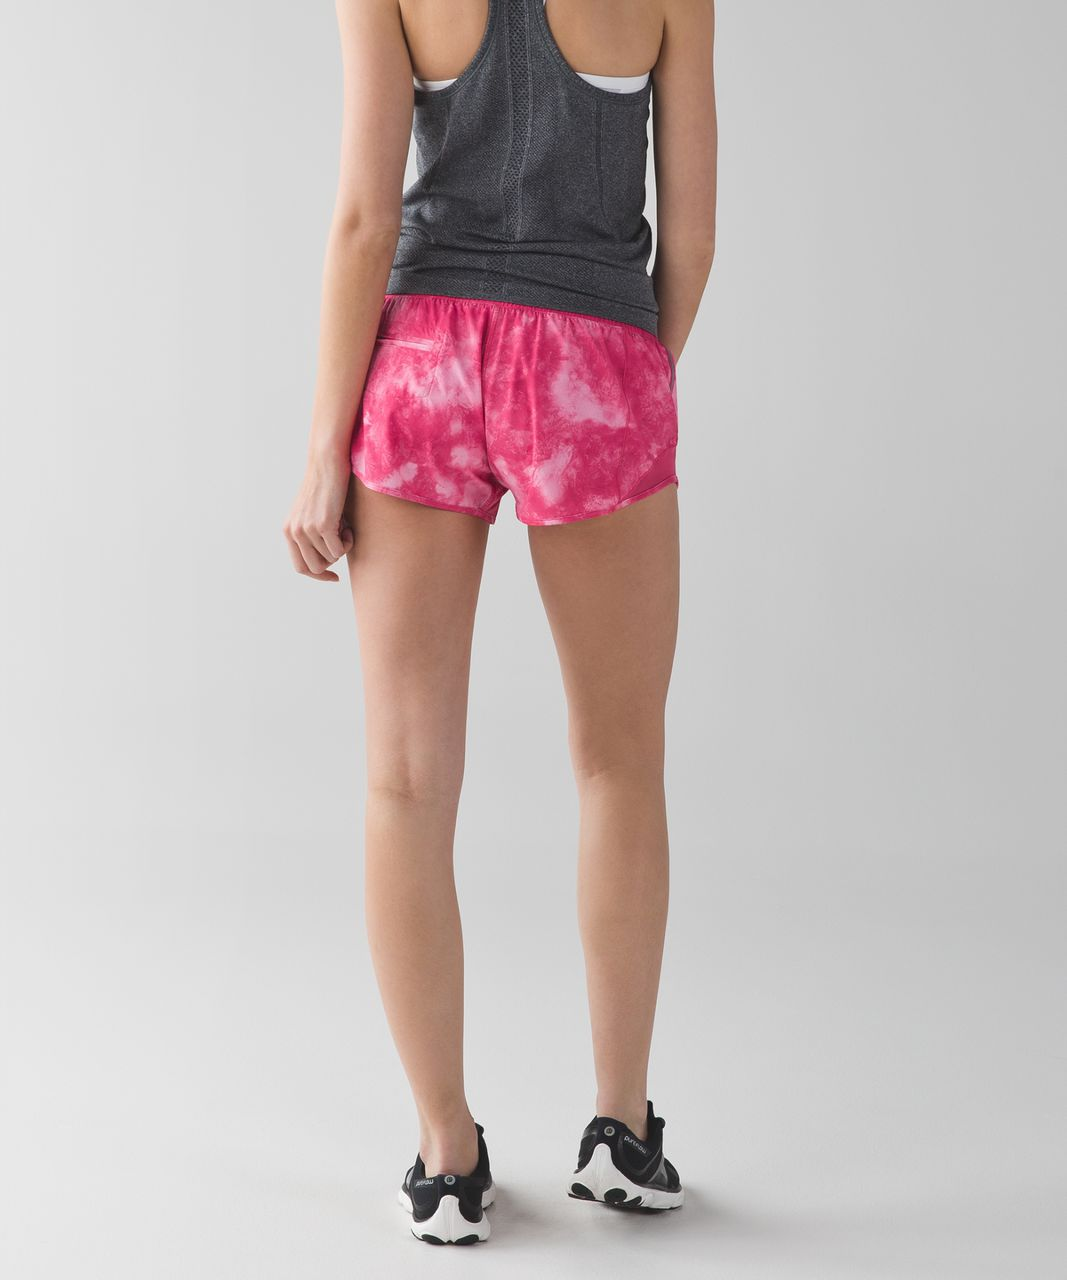 Lululemon Hotty Hot Short - Tidal Trip Boom Juice / Boom Juice